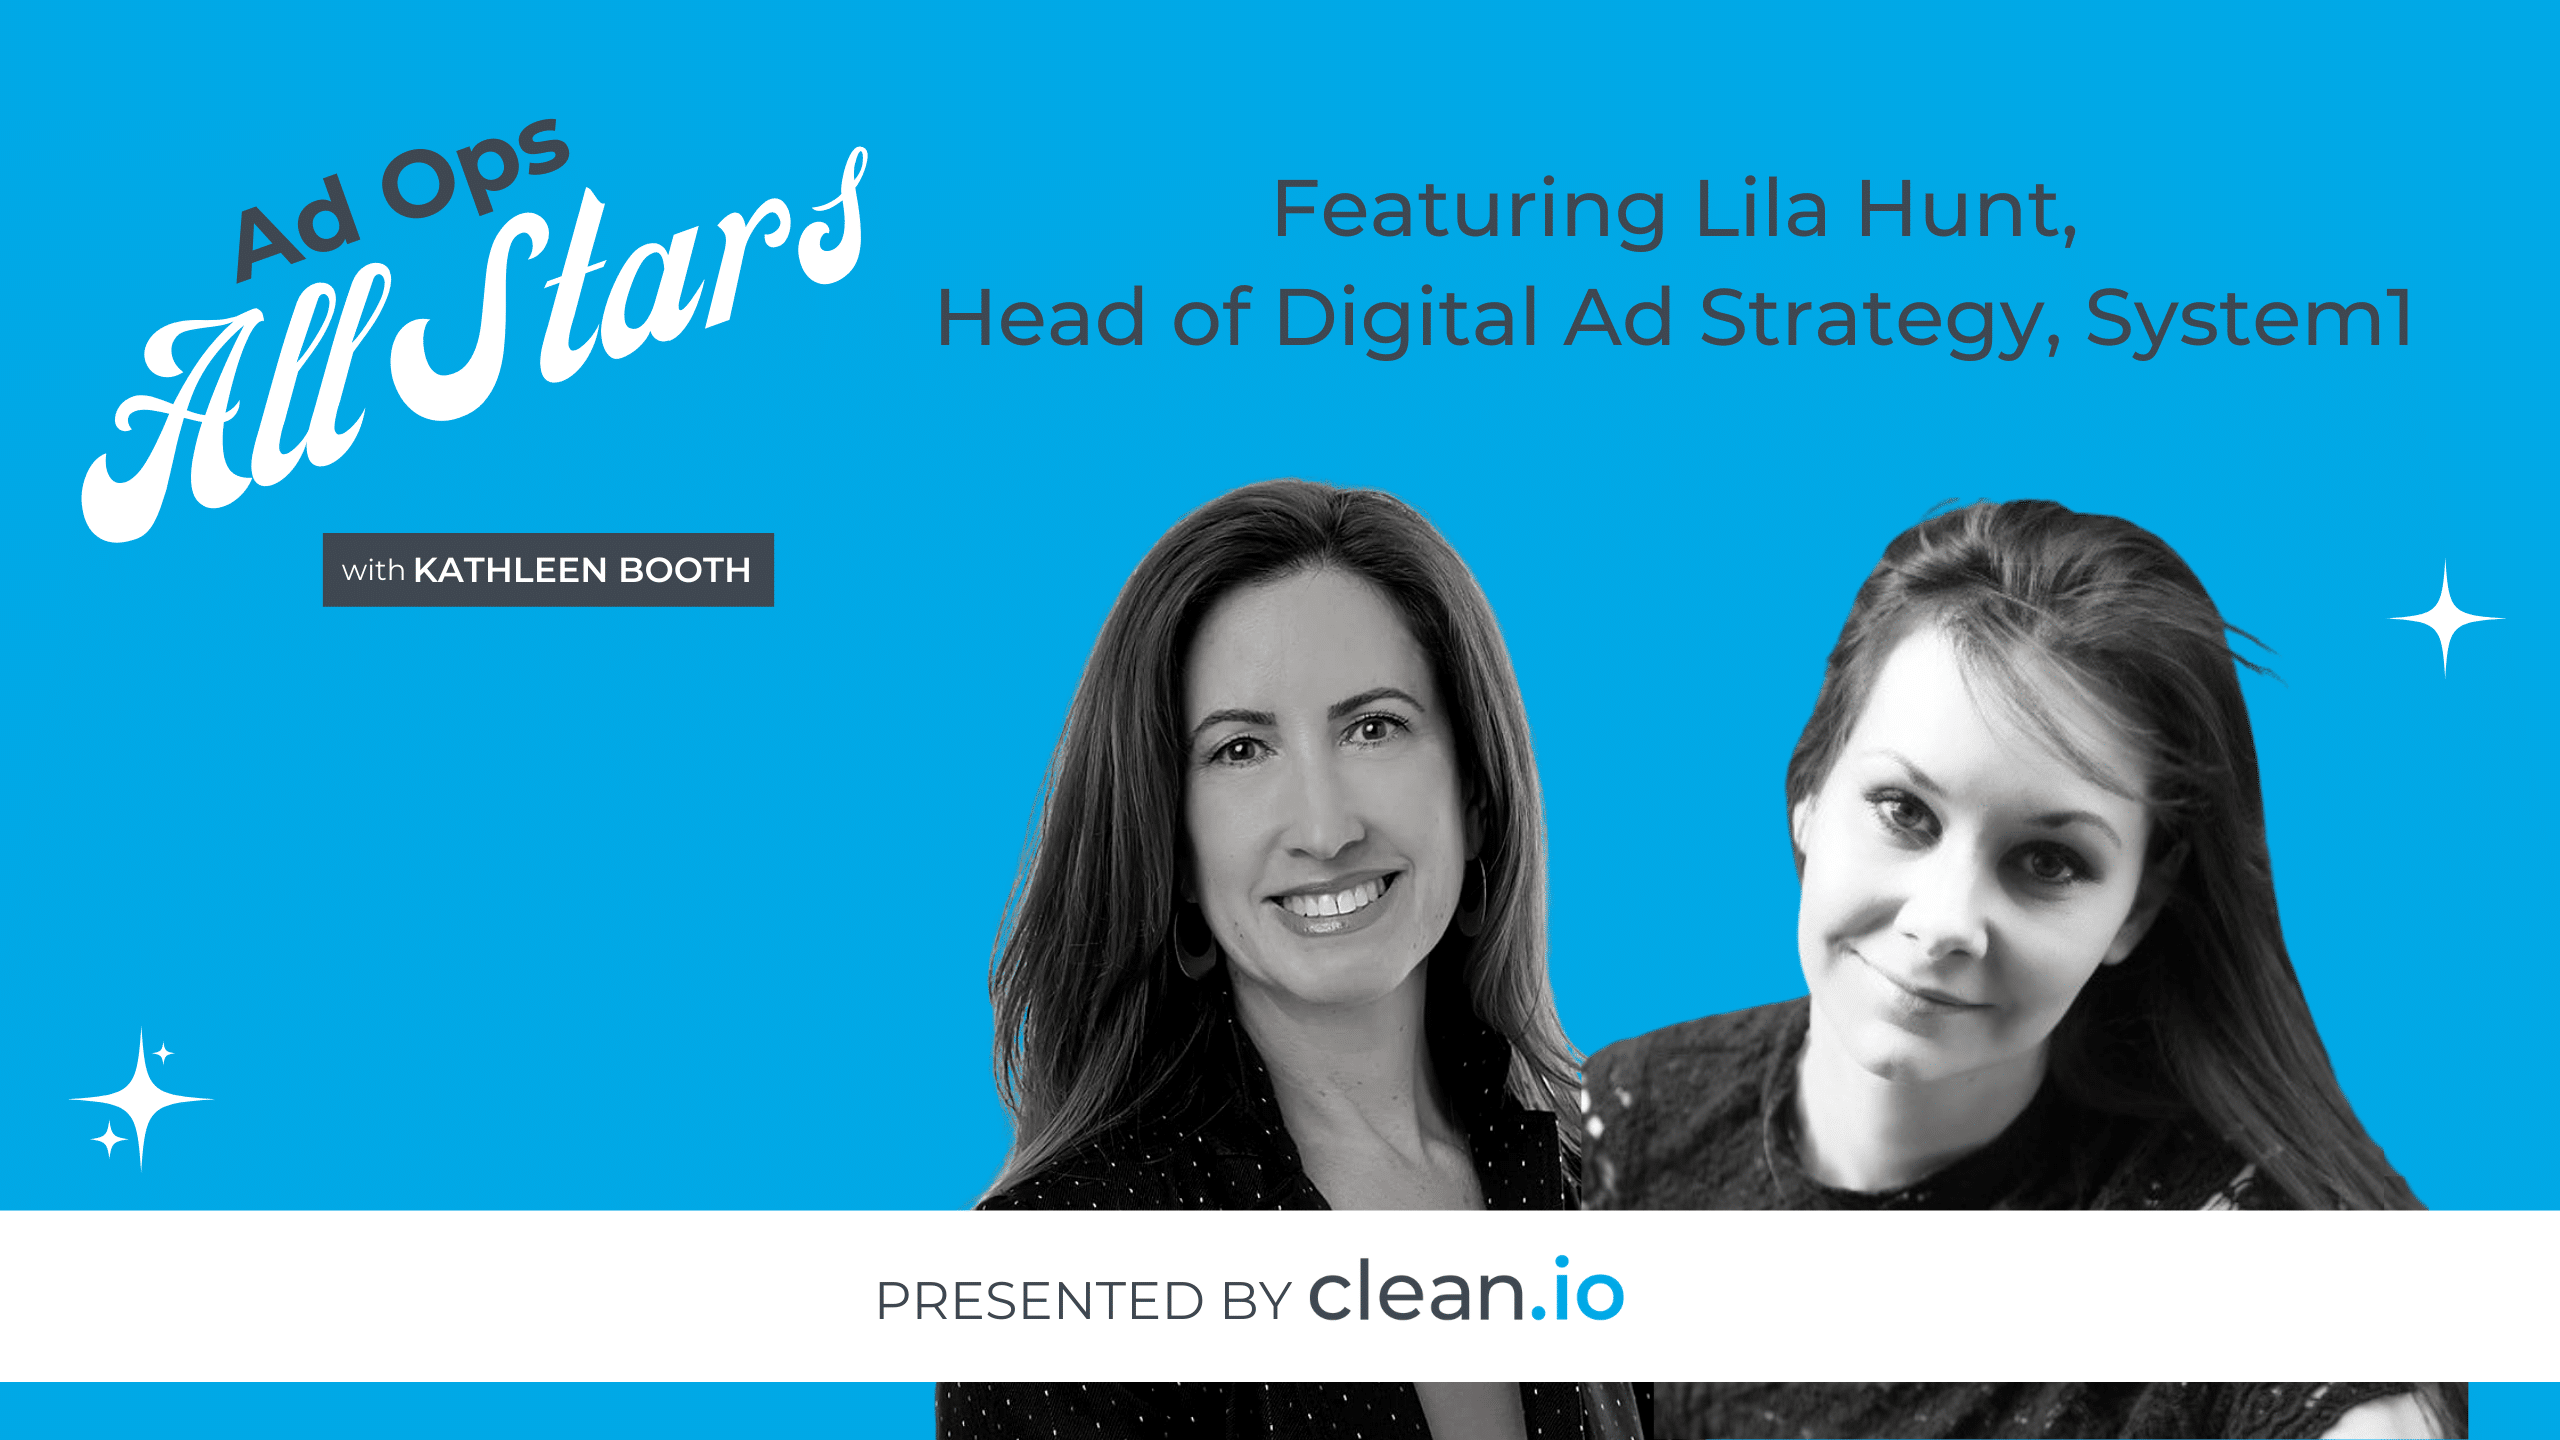 Ad Ops All Stars: Lila Hunt, System1